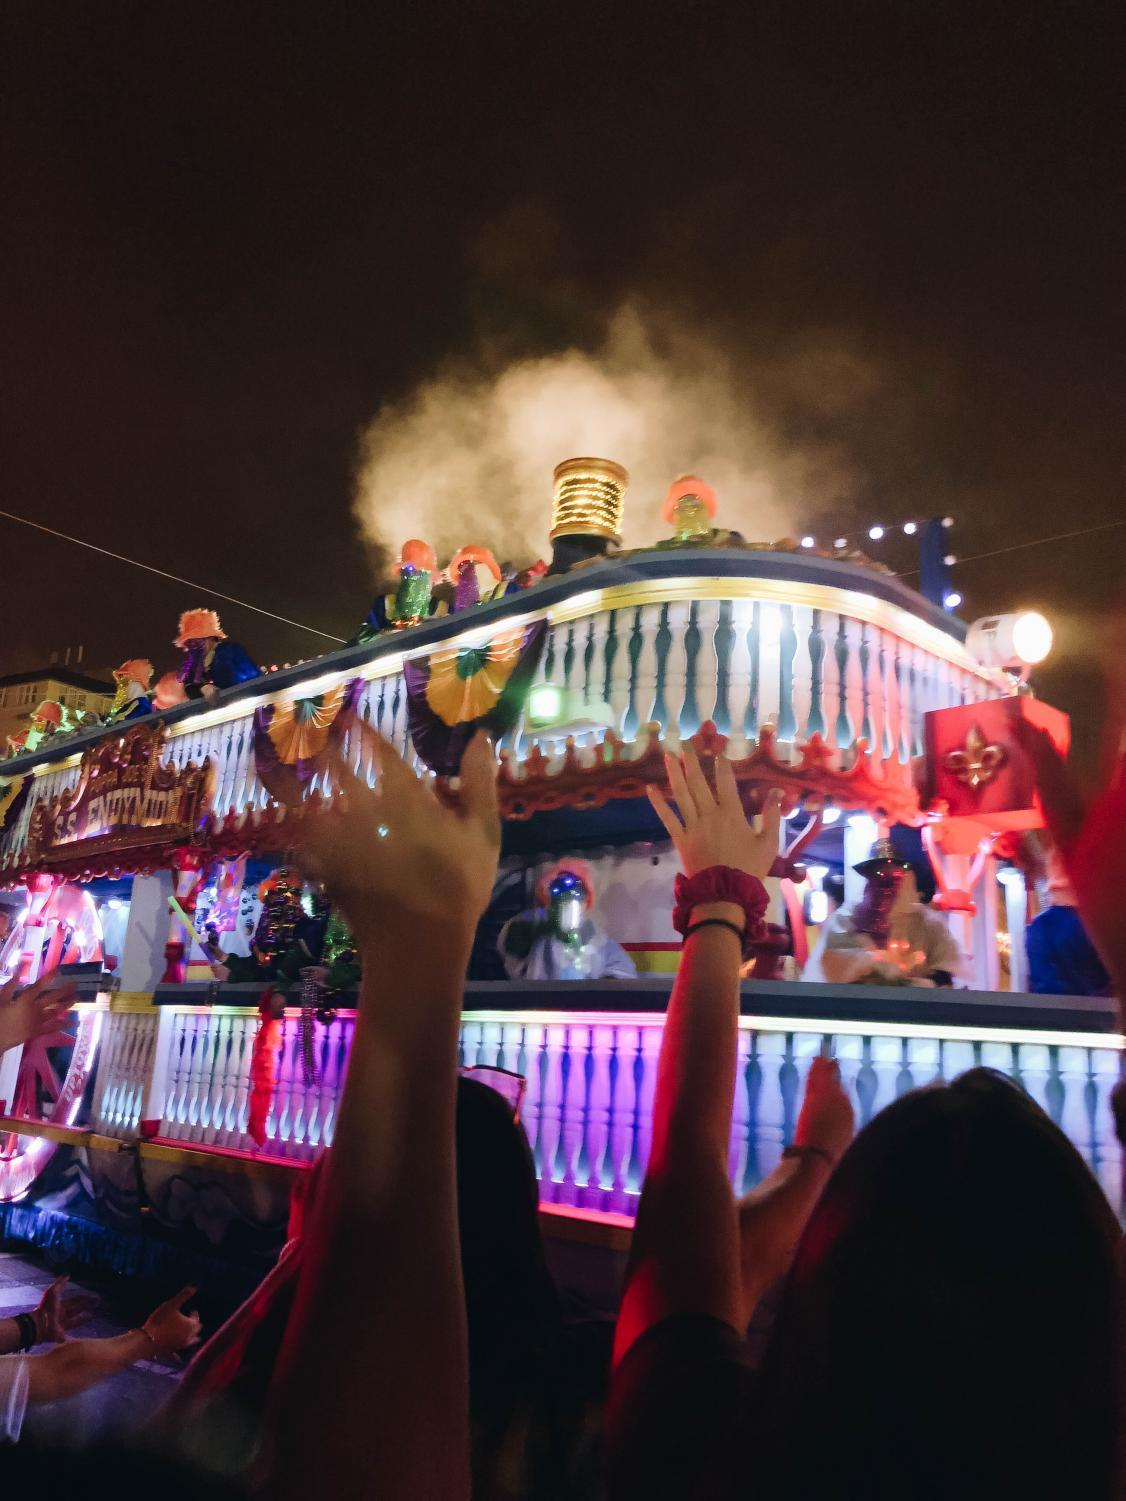 Mardi Gras celebrations in New Orleans, Louisiana, include many colorful costumes and parades.